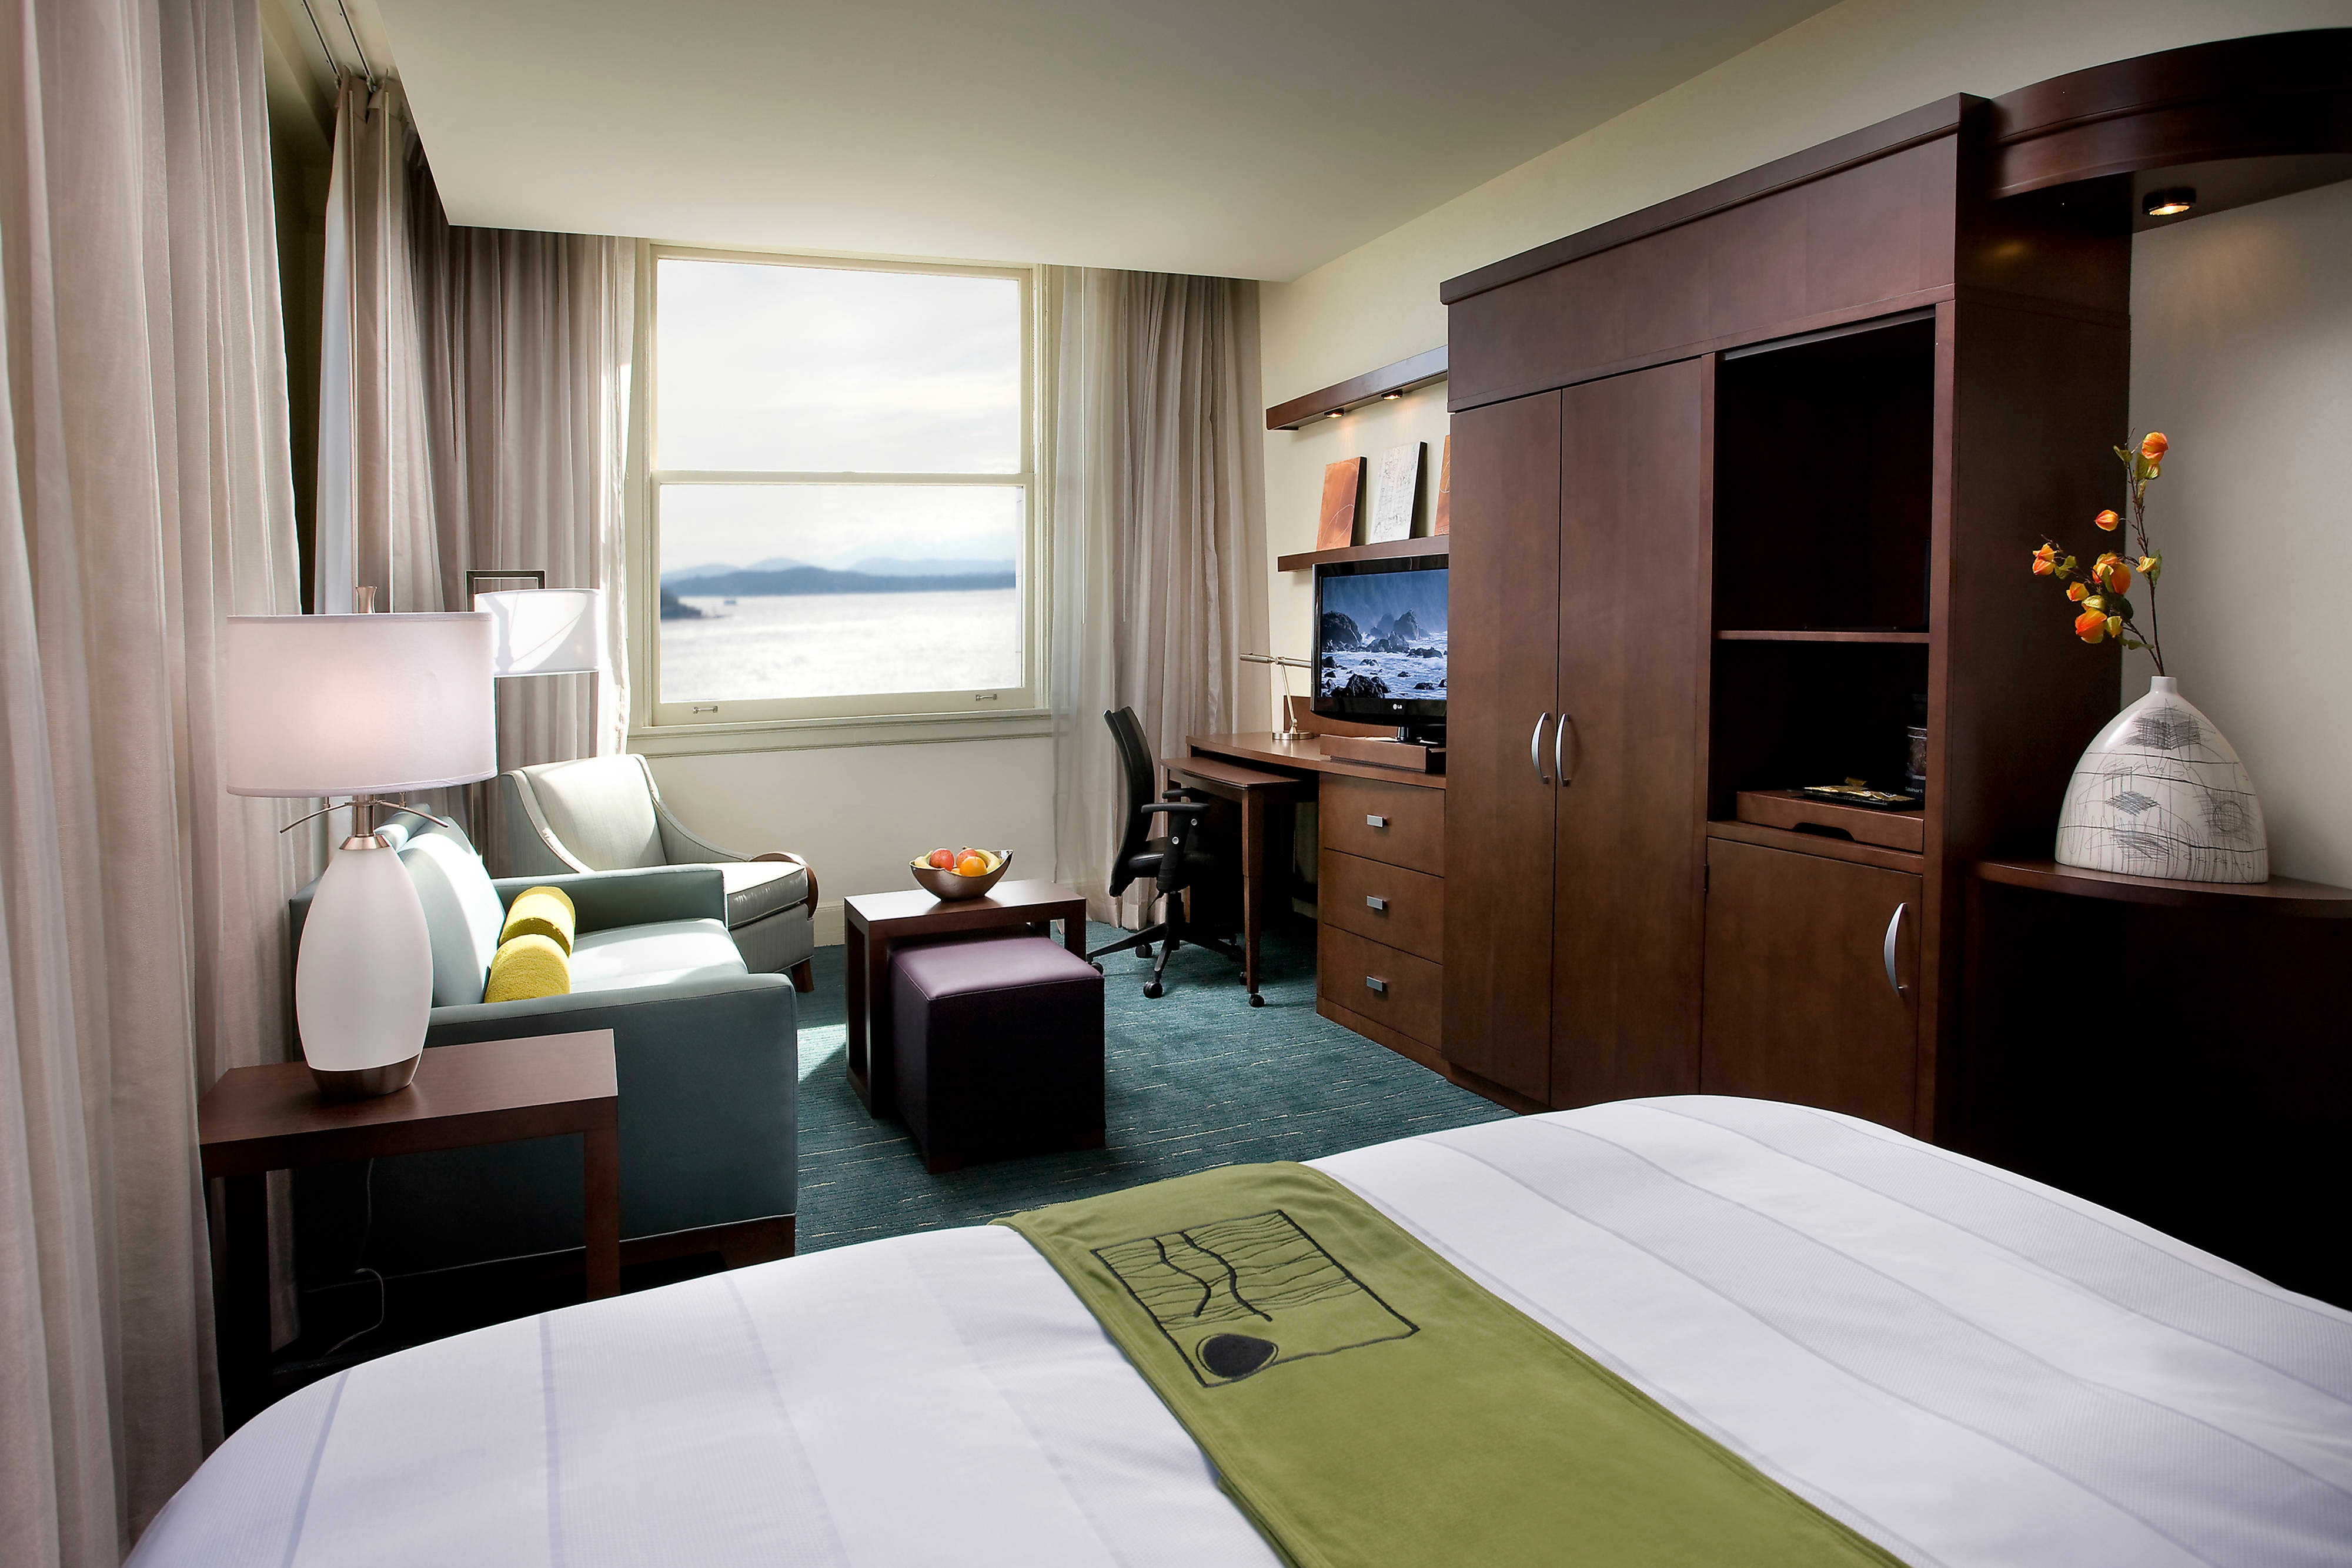 Hotels in pioneer square seattle courtyard hotel seattle for Bayview apartments seattle